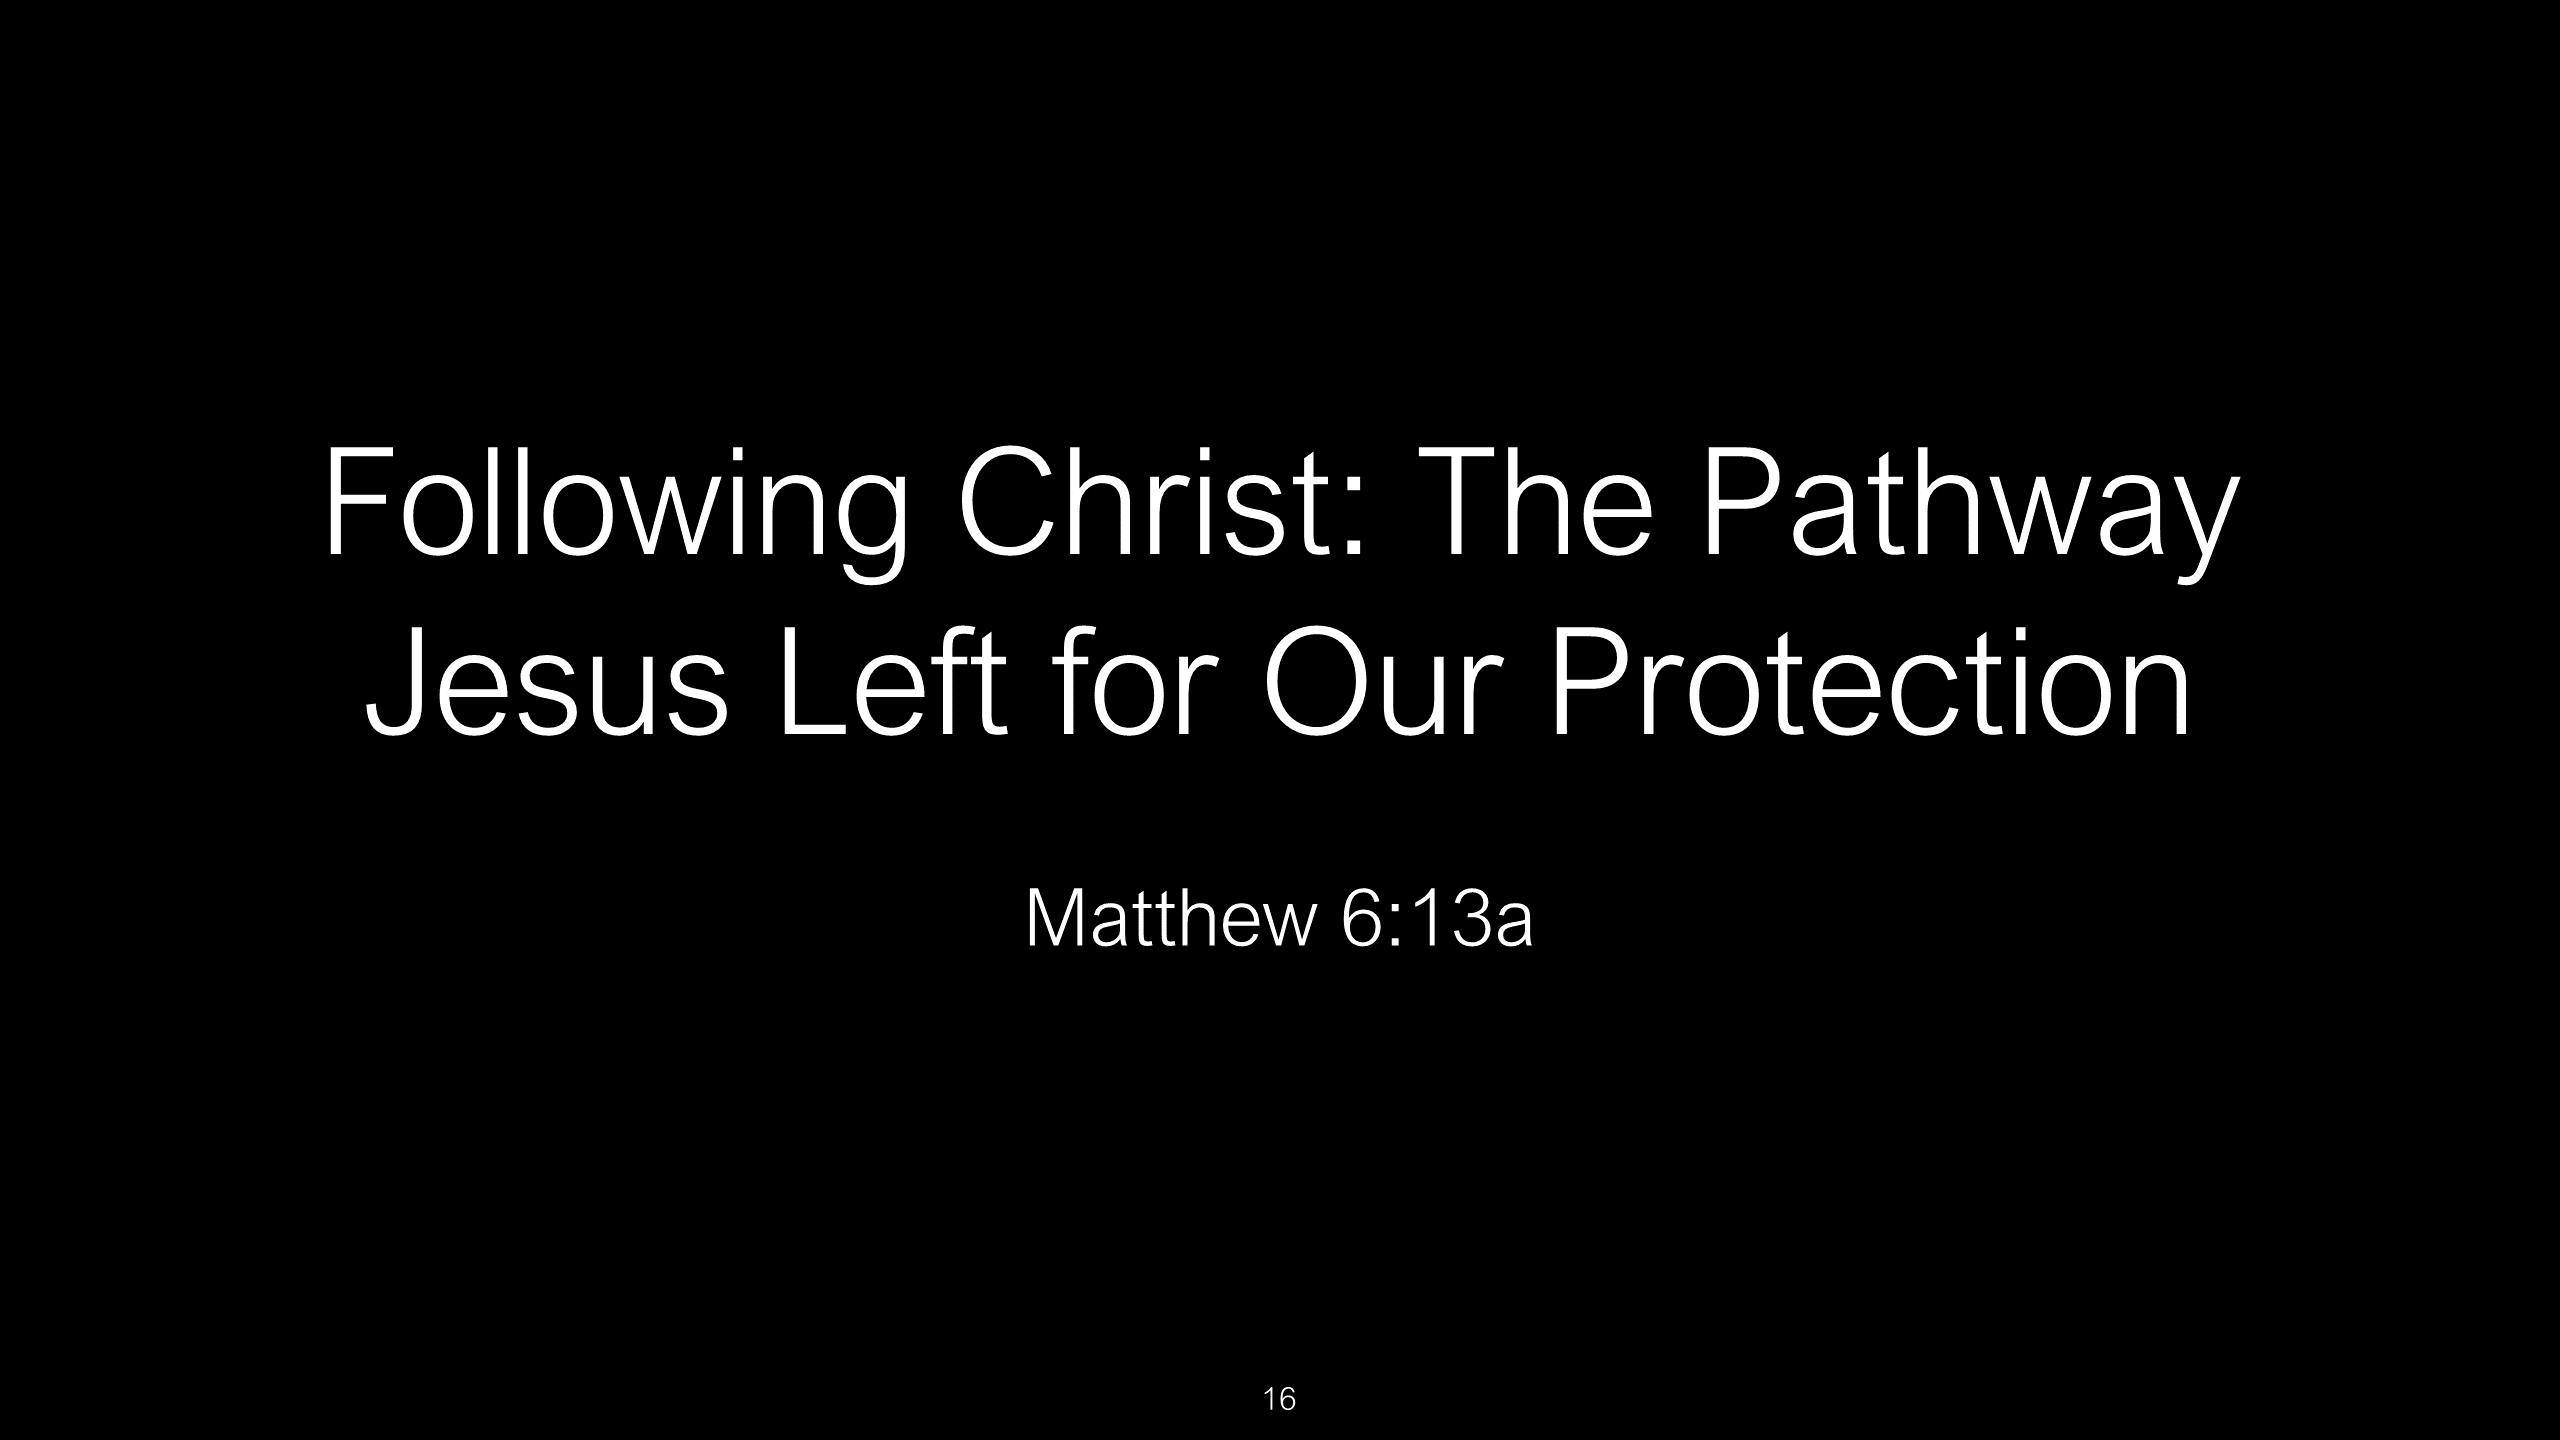 SWS-10 - Following Christ - The Path Jesus Left For Our Safety (16)